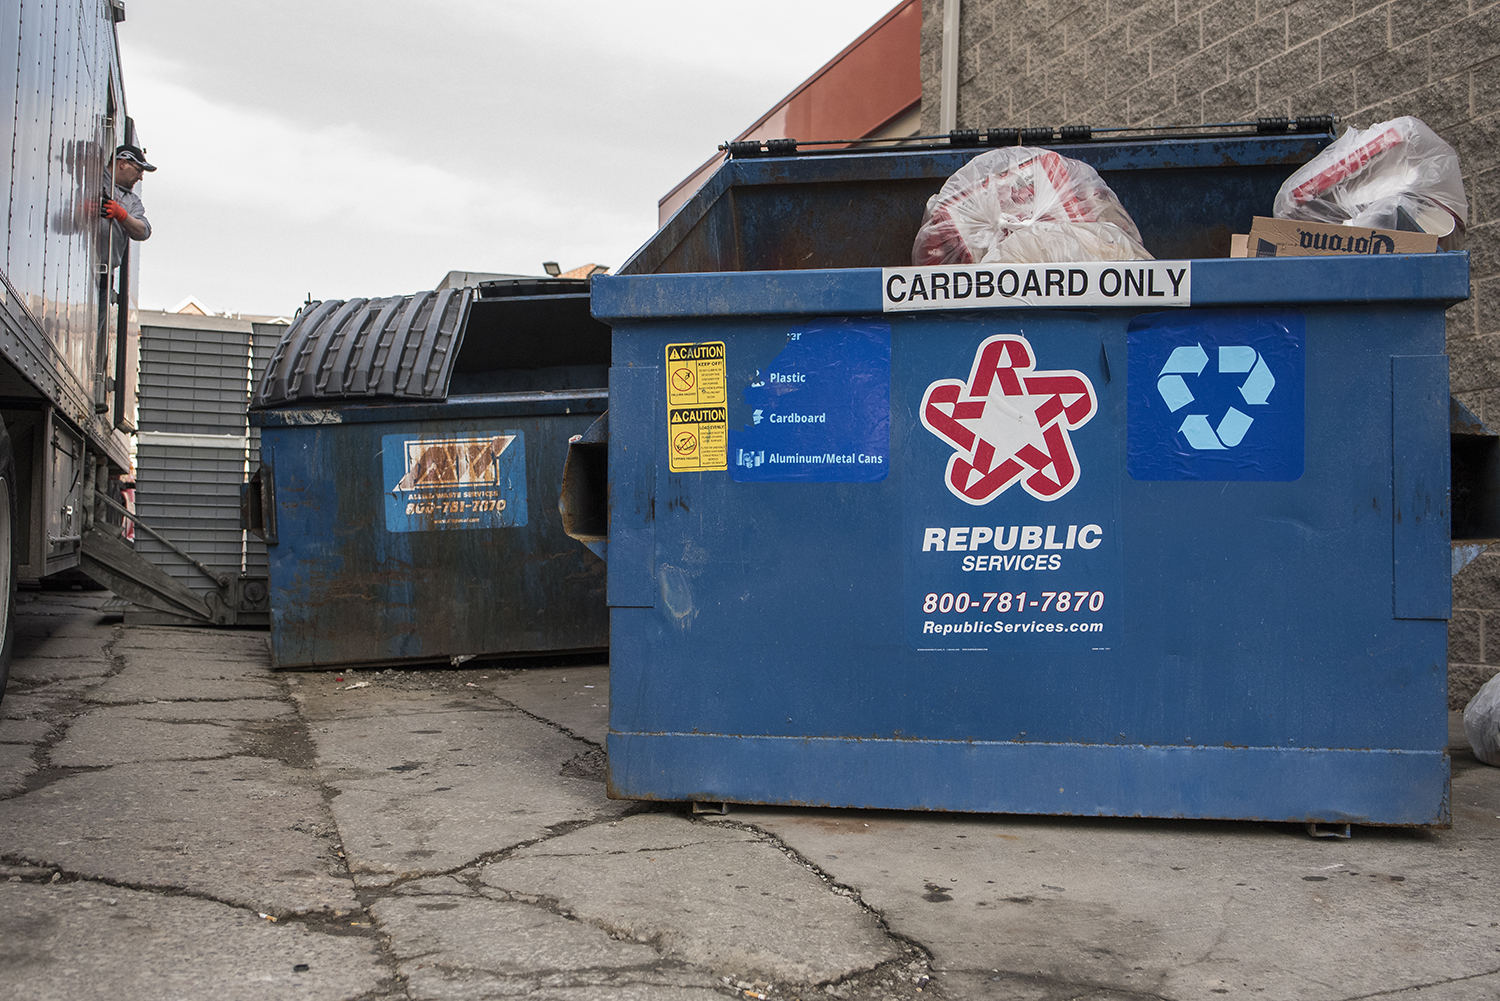 Newly presented cardboard dumpsters are seated behind the Three Towers apartment complex at 313 S. Gilbert St. on Sunday, Jan. 28, 2018. The Iowa City City Council passed a mandate in Nov. 2016 requiring all rental units of four tenants or more to provide recycling services. This resolution will be enforced by the end of 2018.